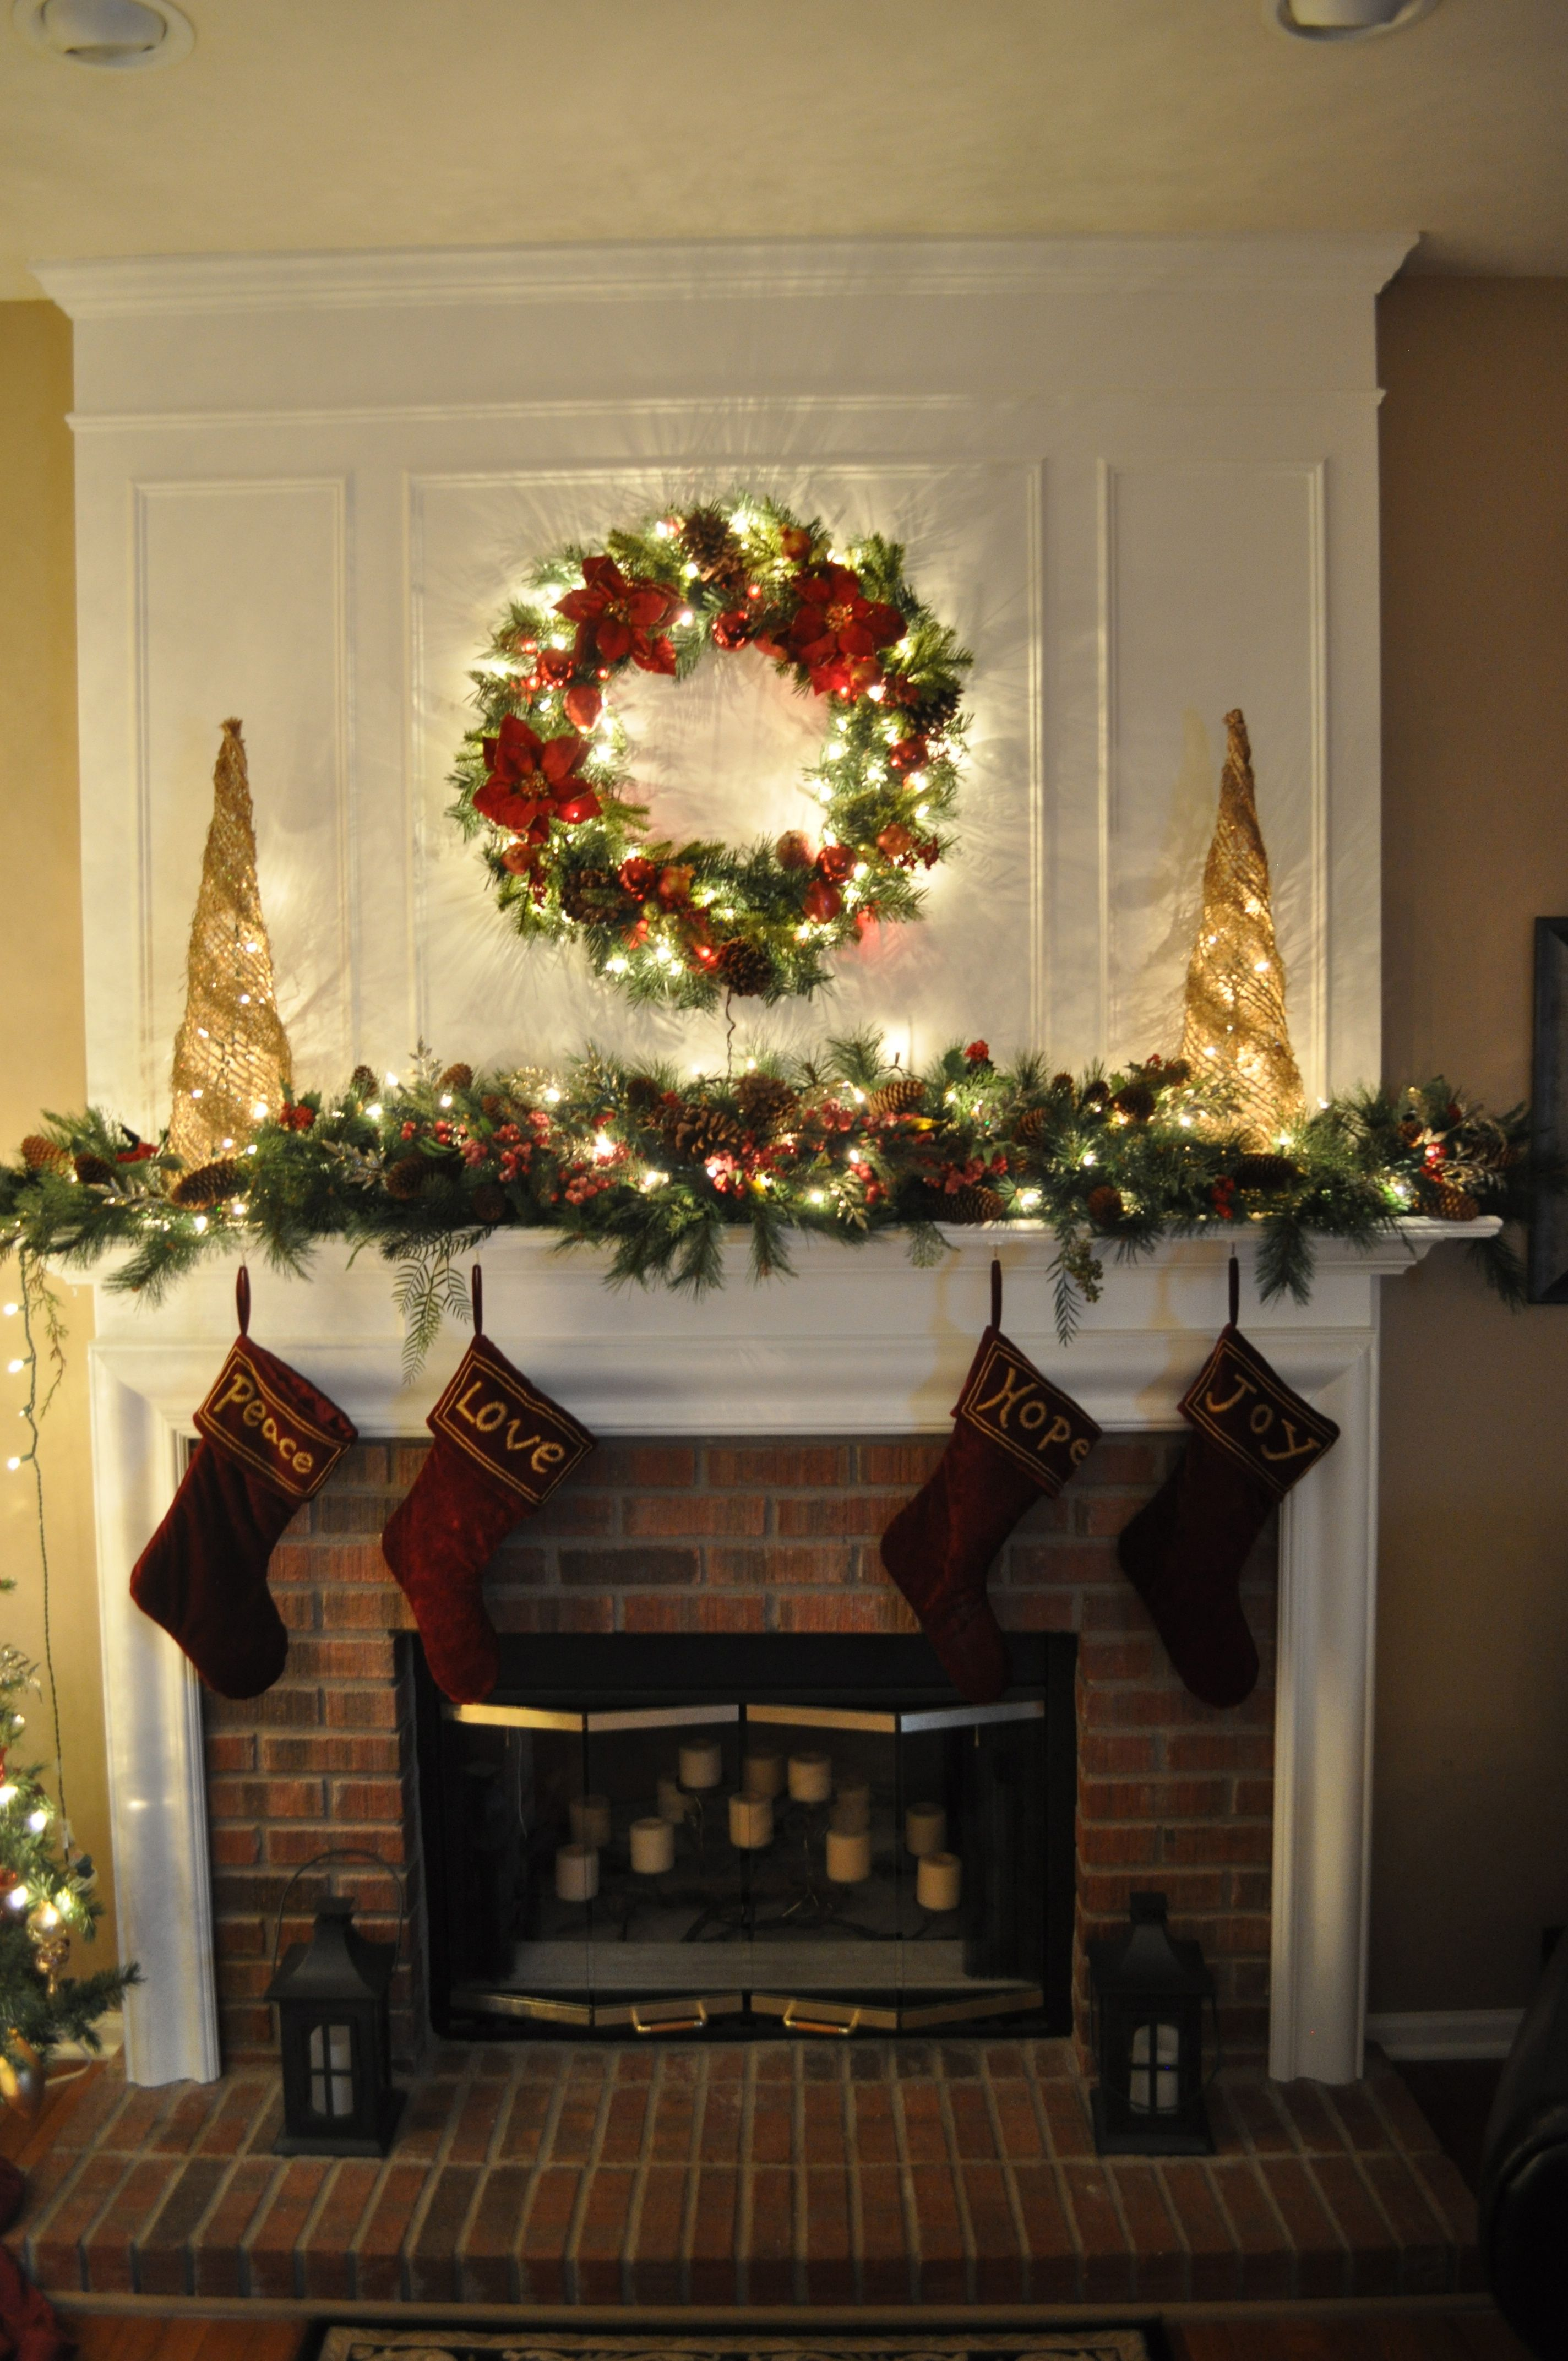 Wendy's o) Mantle. A section or two of full pine garland